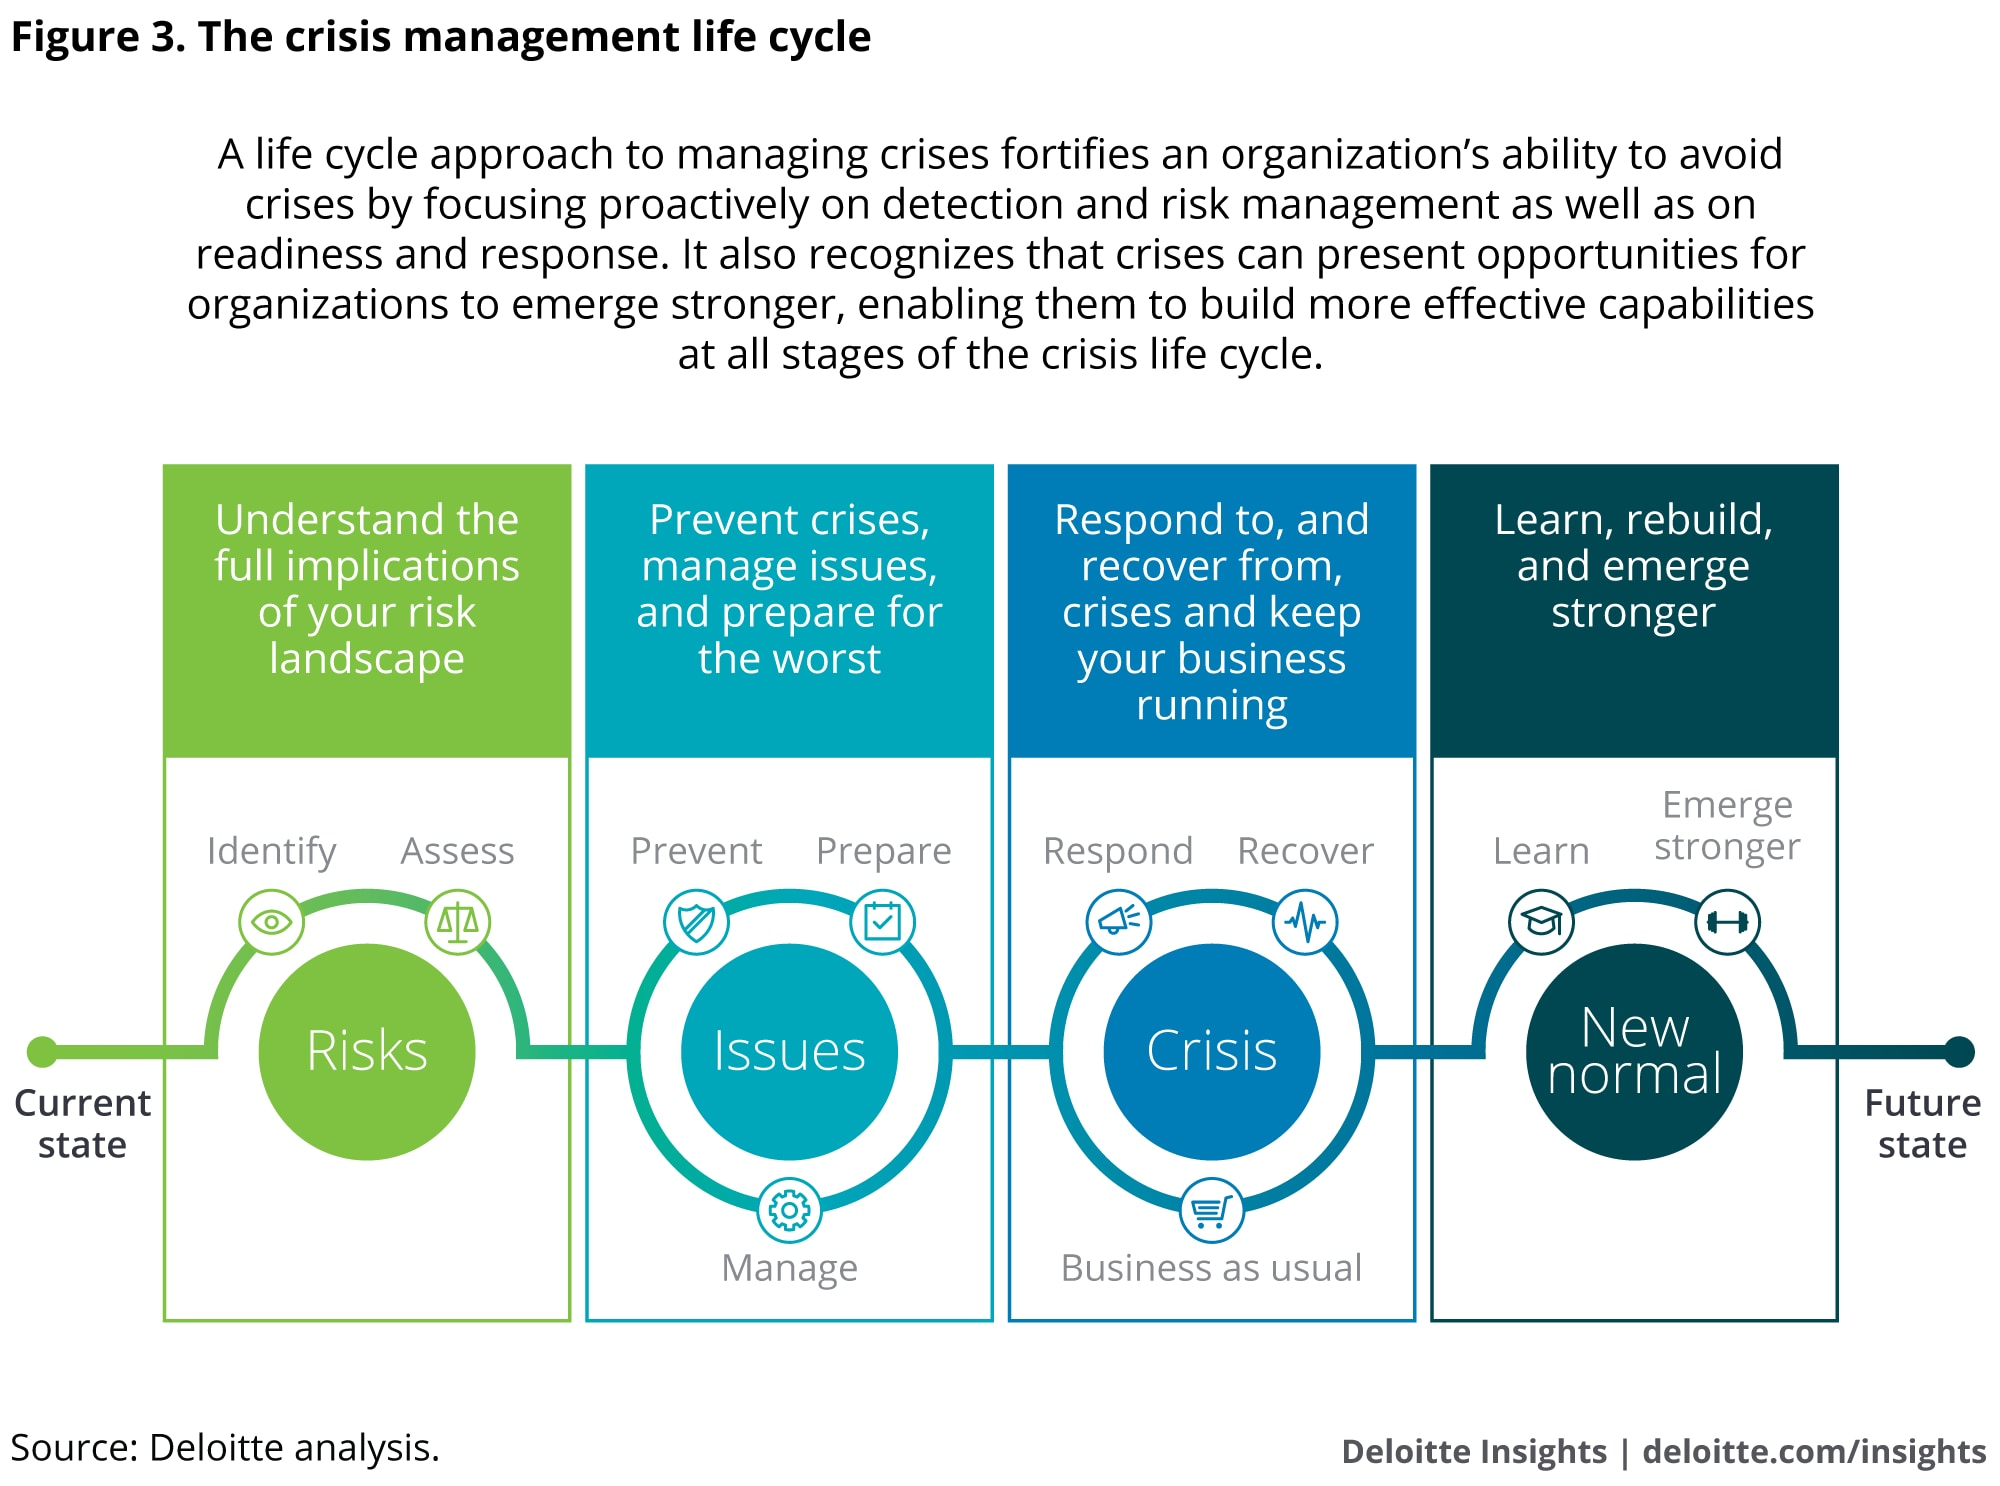 The crisis management life cycle